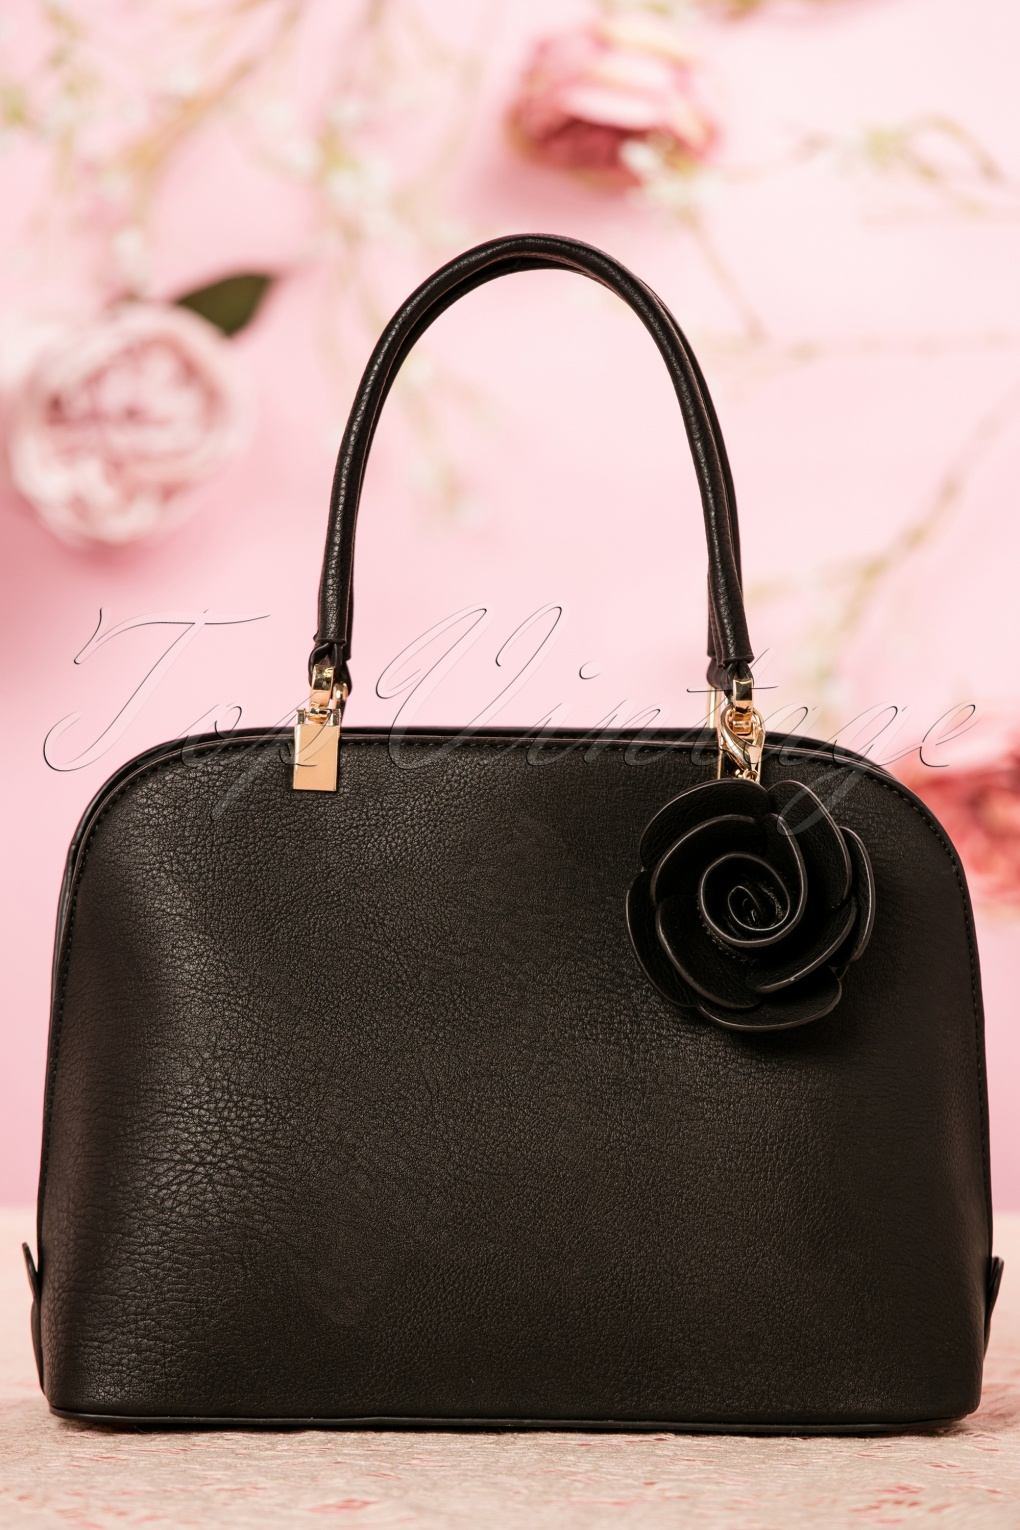 Retro Handbags, Purses, Wallets, Bags 50s Loretta Rose Handbag in Black £42.64 AT vintagedancer.com